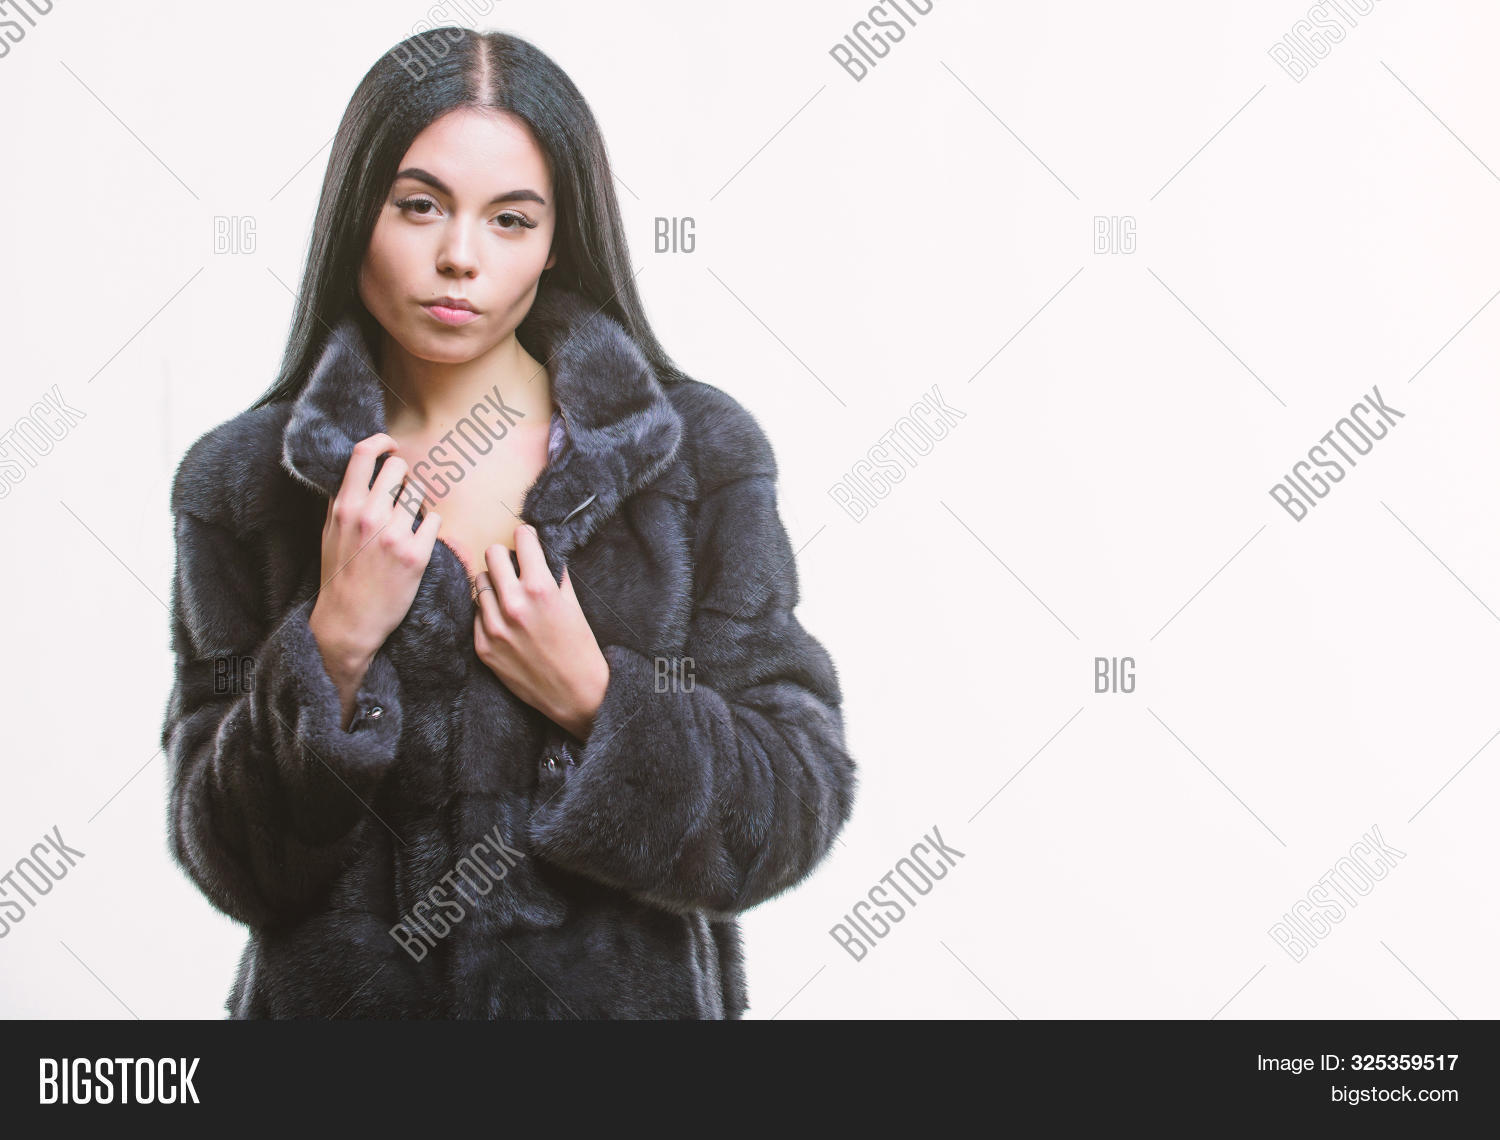 Girl elegant lady wear fashionable coat jacket. Luxurious fur. Girl posing fur coat. Woman attractive model wear dark soft coat. Fashion concept. Female with makeup wear mink black fur coat